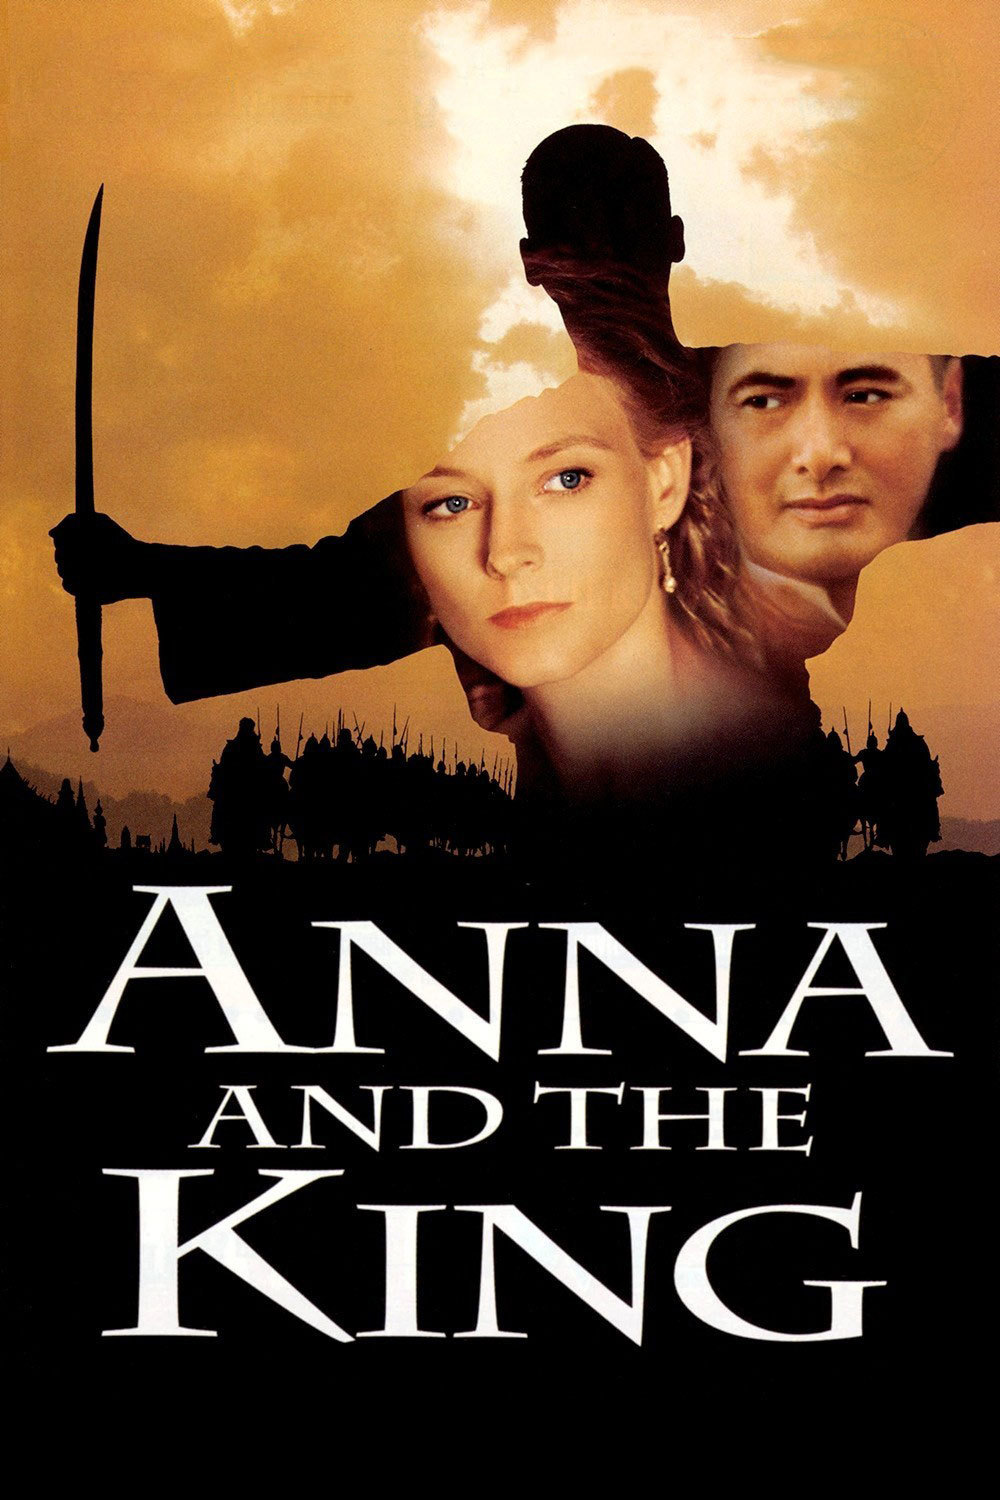 anna and the king movie Buy anna and the king: read 421 movies & tv reviews - amazoncom.